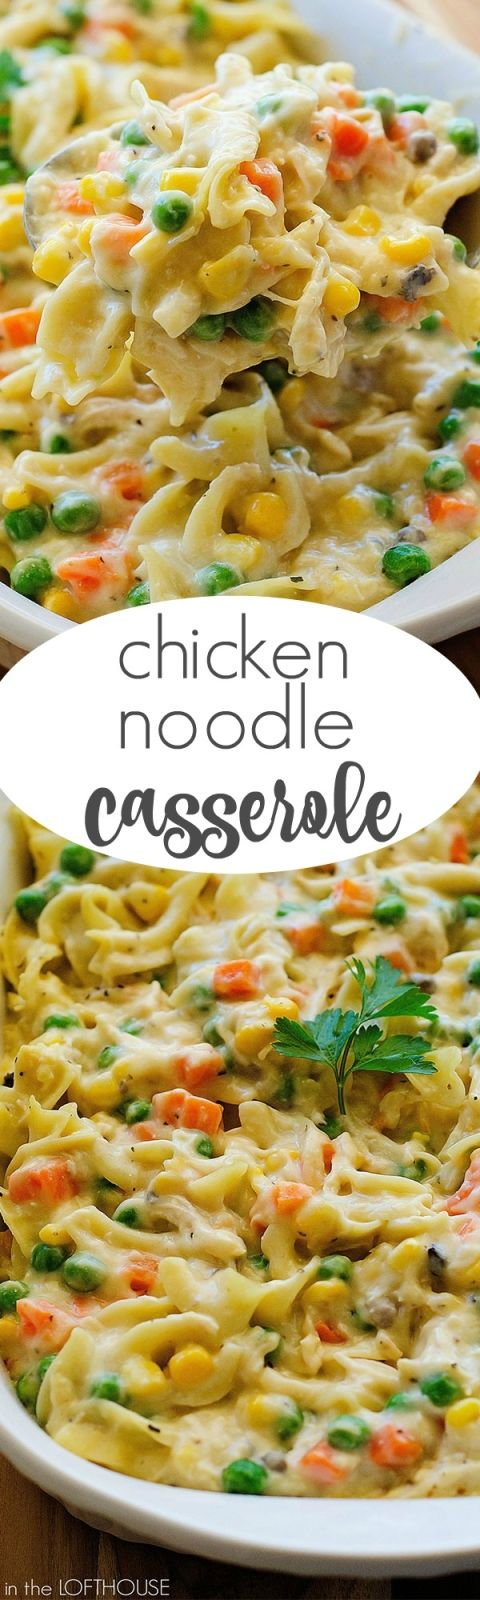 I like this chicken noodle casserole. I only use 1 can soup (usually cream of chicken) and no spices. Salt & Pepper to taste at the table is perfect. However, having a good flavor to your chicken is important, so make sure you spice it up a bit when you're cooking it beforehand (I like a dash of S&P and some Lawry's, Old Bay, or other season-all spice; just watch out for the salt content).